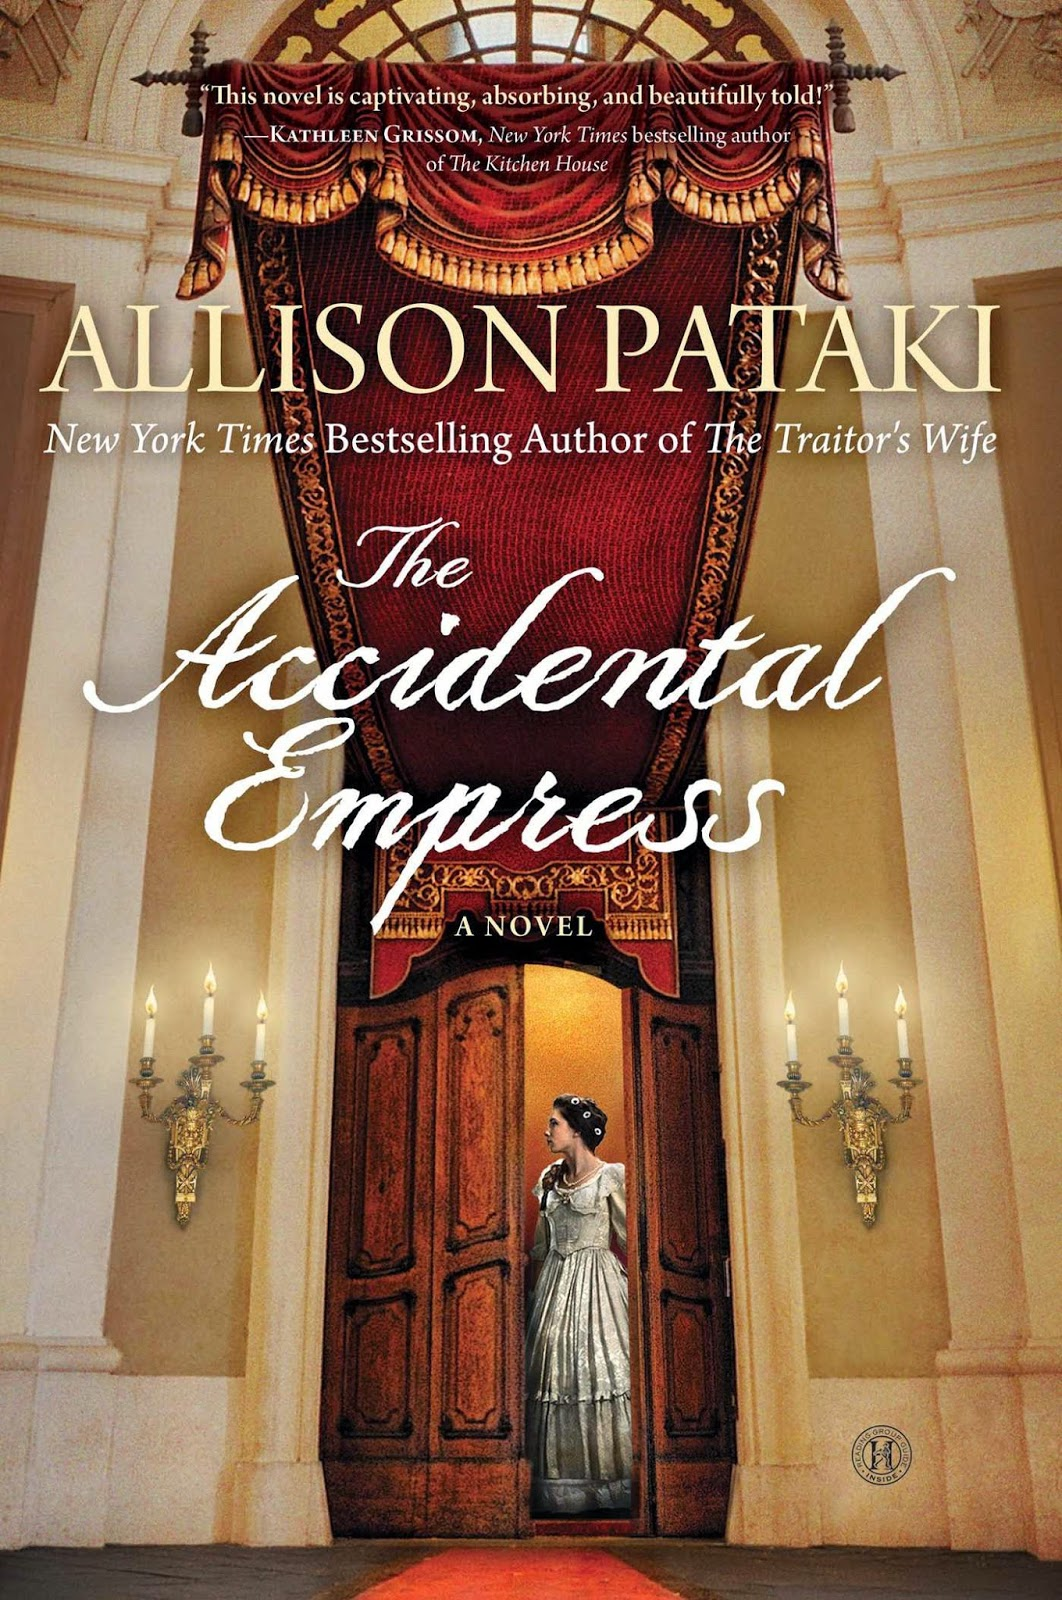 The Accidental Empress by Allison Pataki